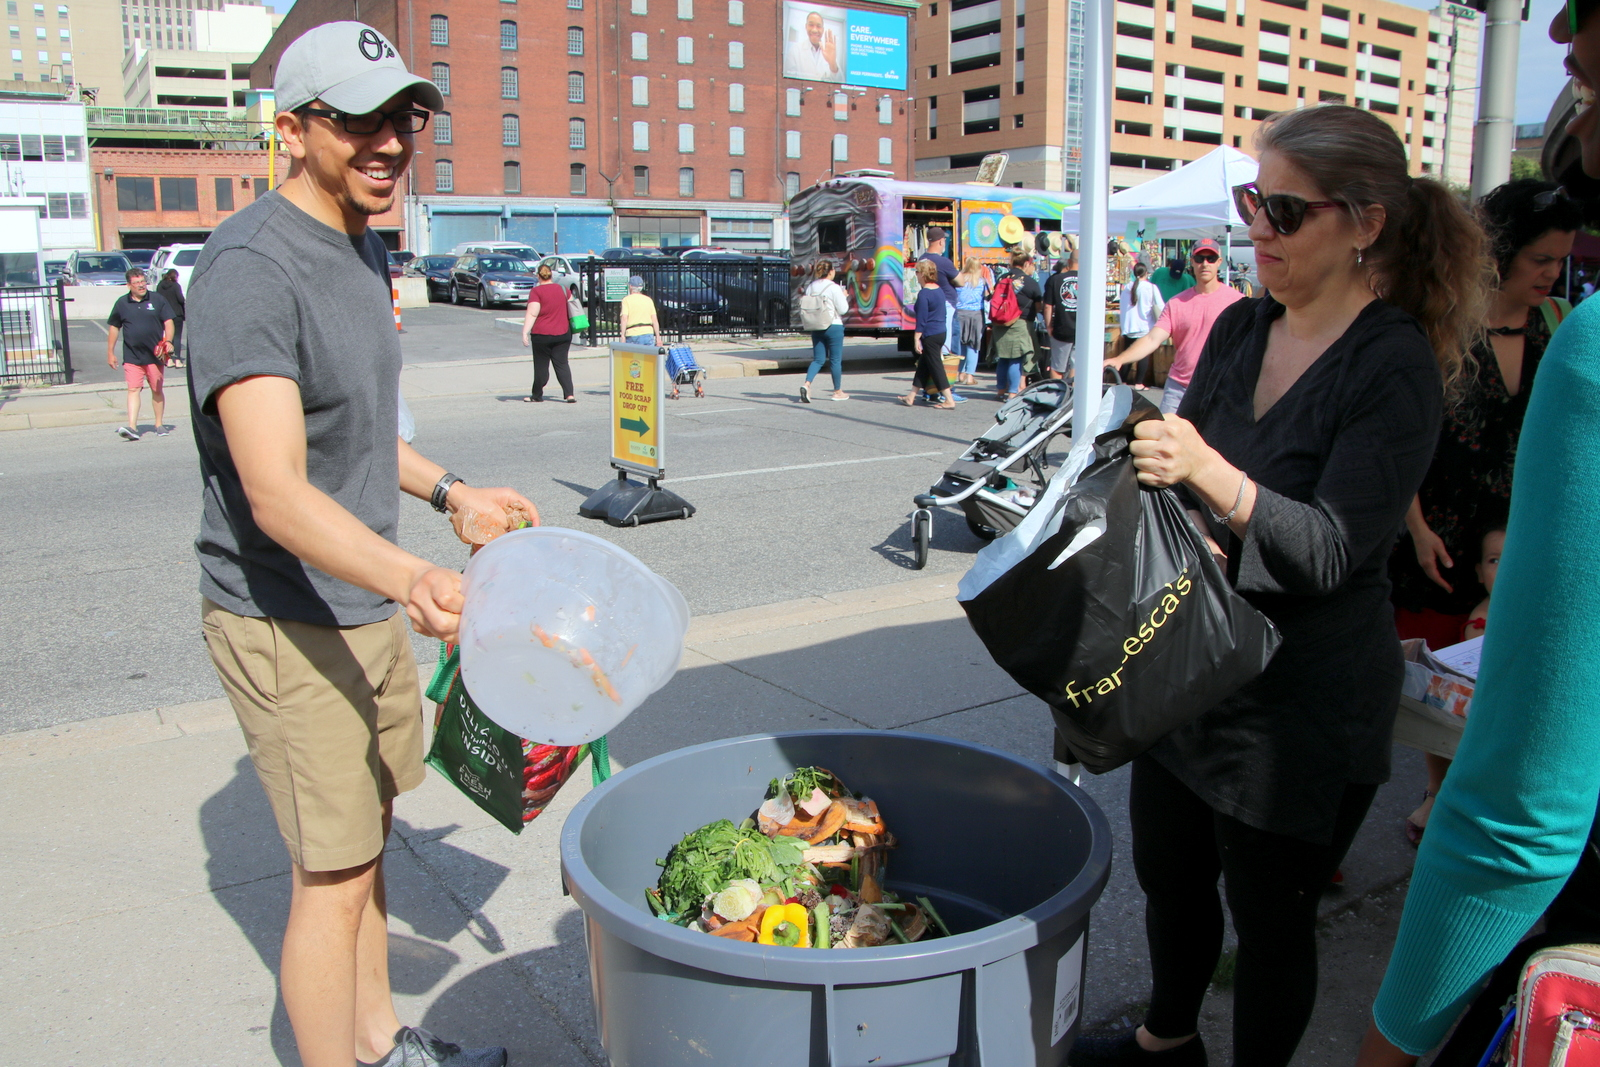 Baltimore's Office of Sustainability is at the Sunday farmer's market this summer, accepting food waste for composting. (Fern Shen)